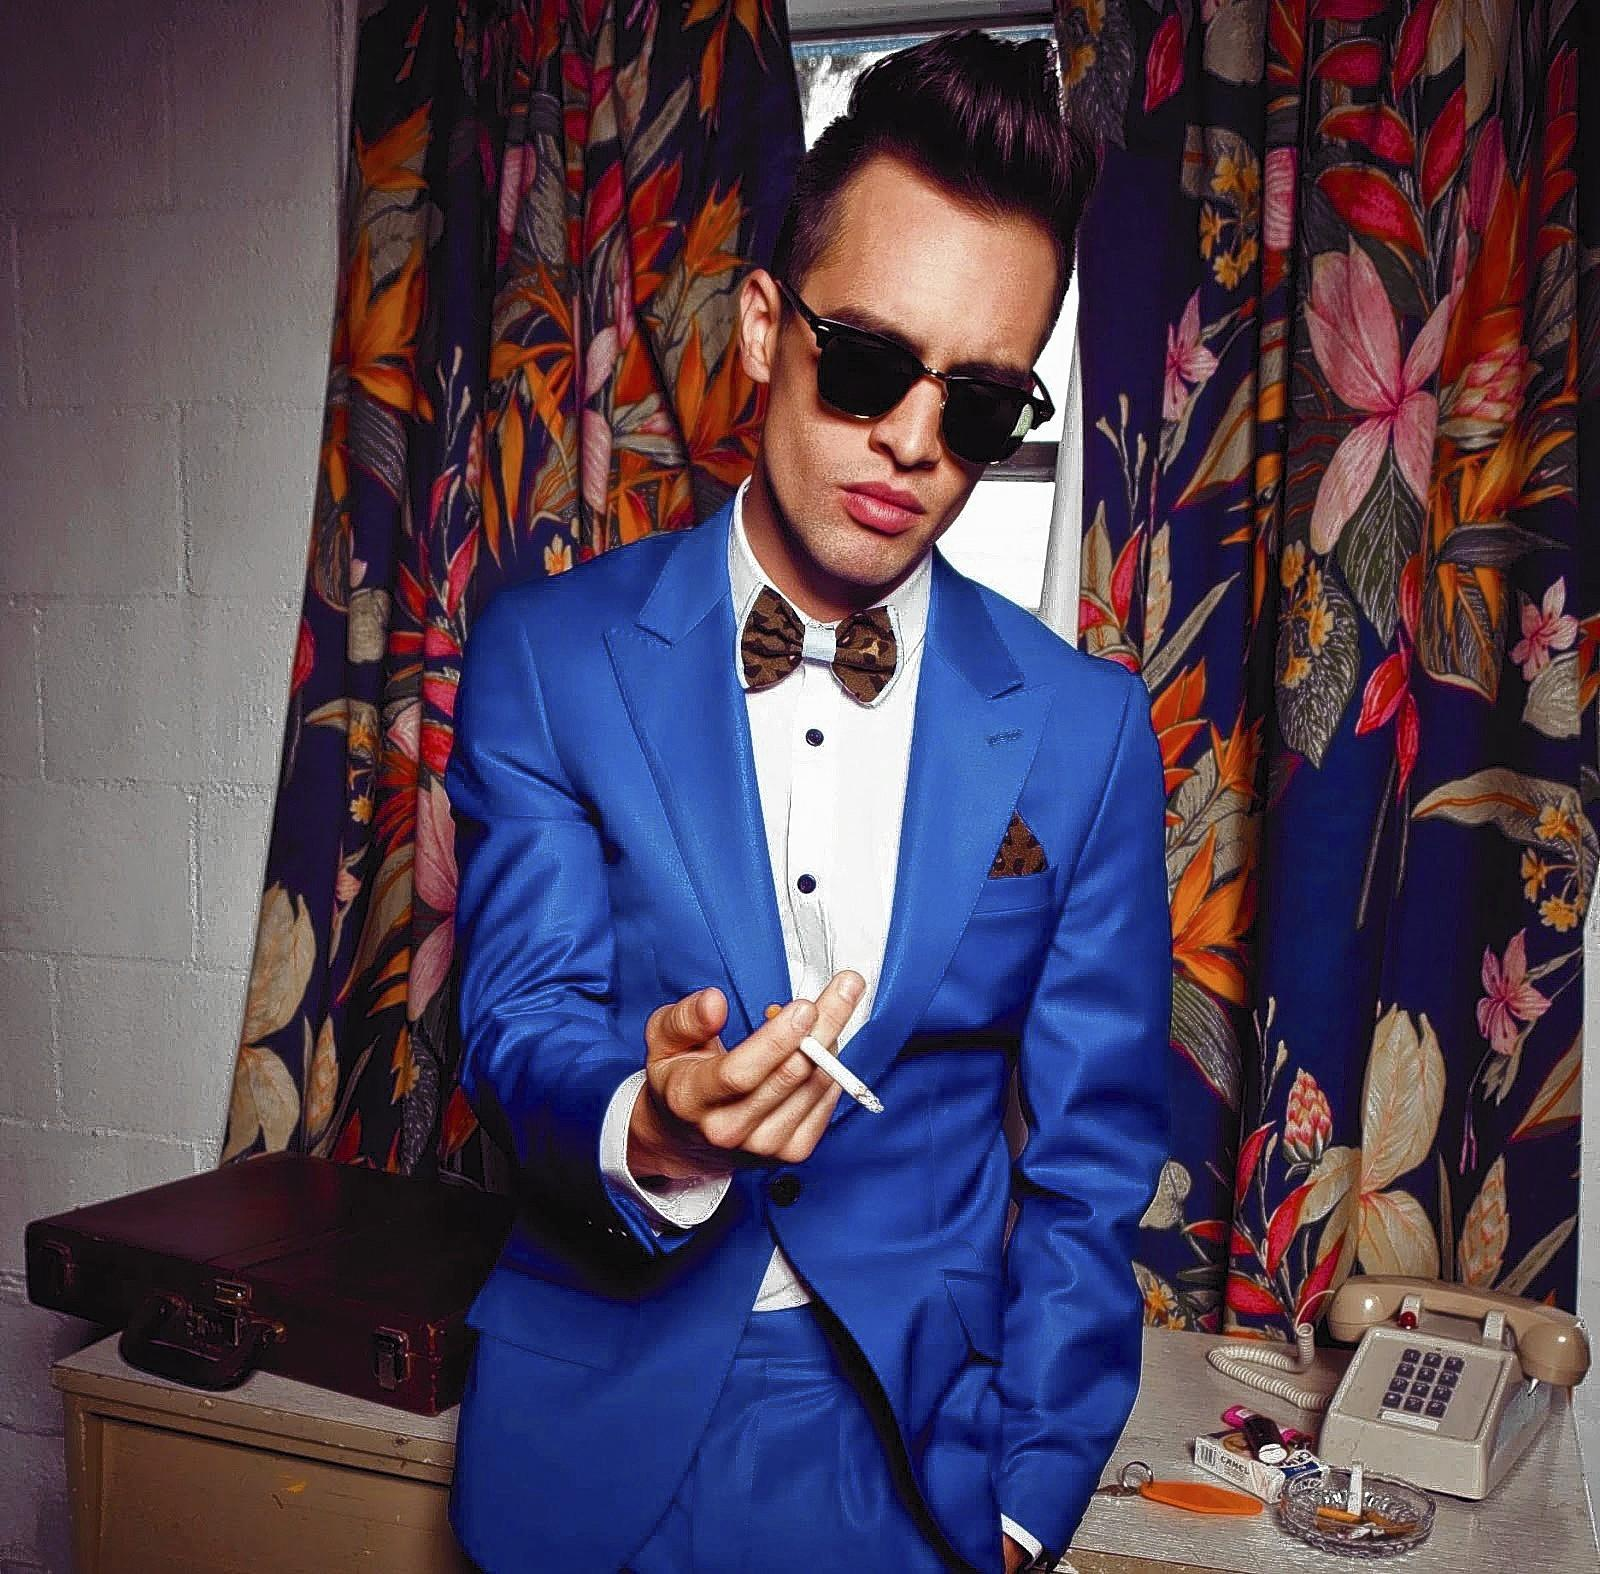 Brendon Urie fronts rock band Panic! at the Disco.